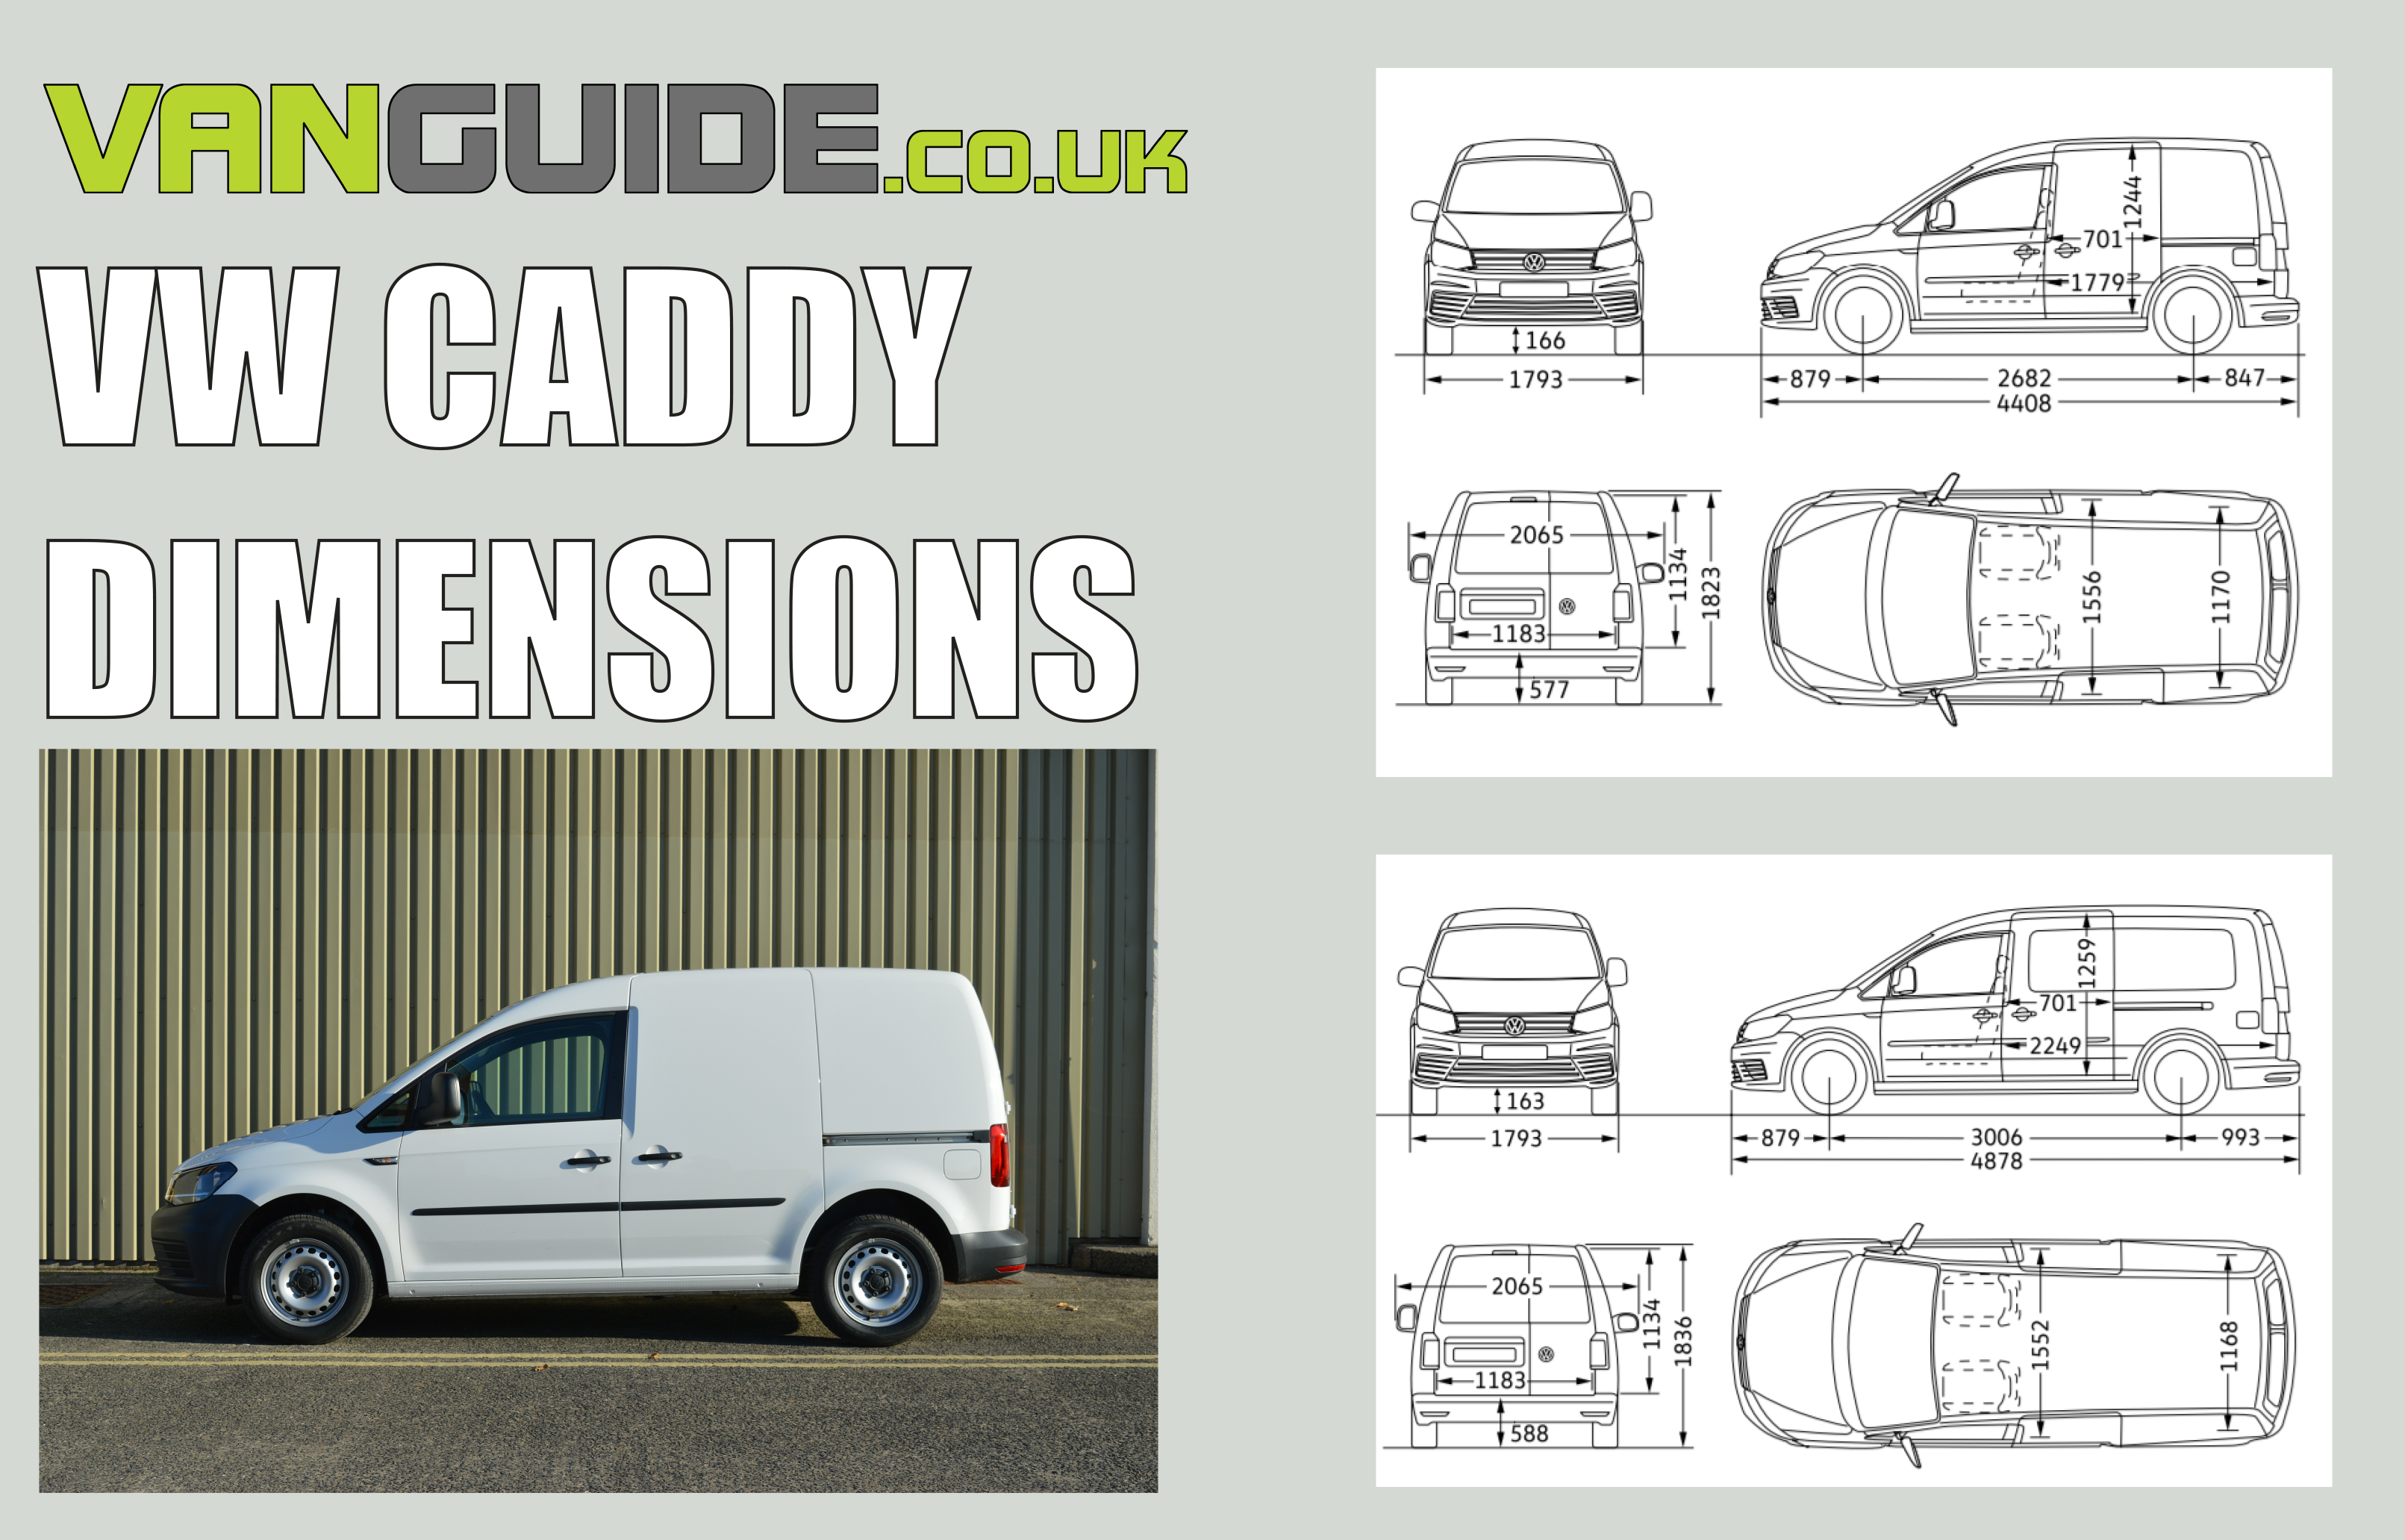 Vw Caddy Dimensions Guide Vanguide Co Uk The Van Experts